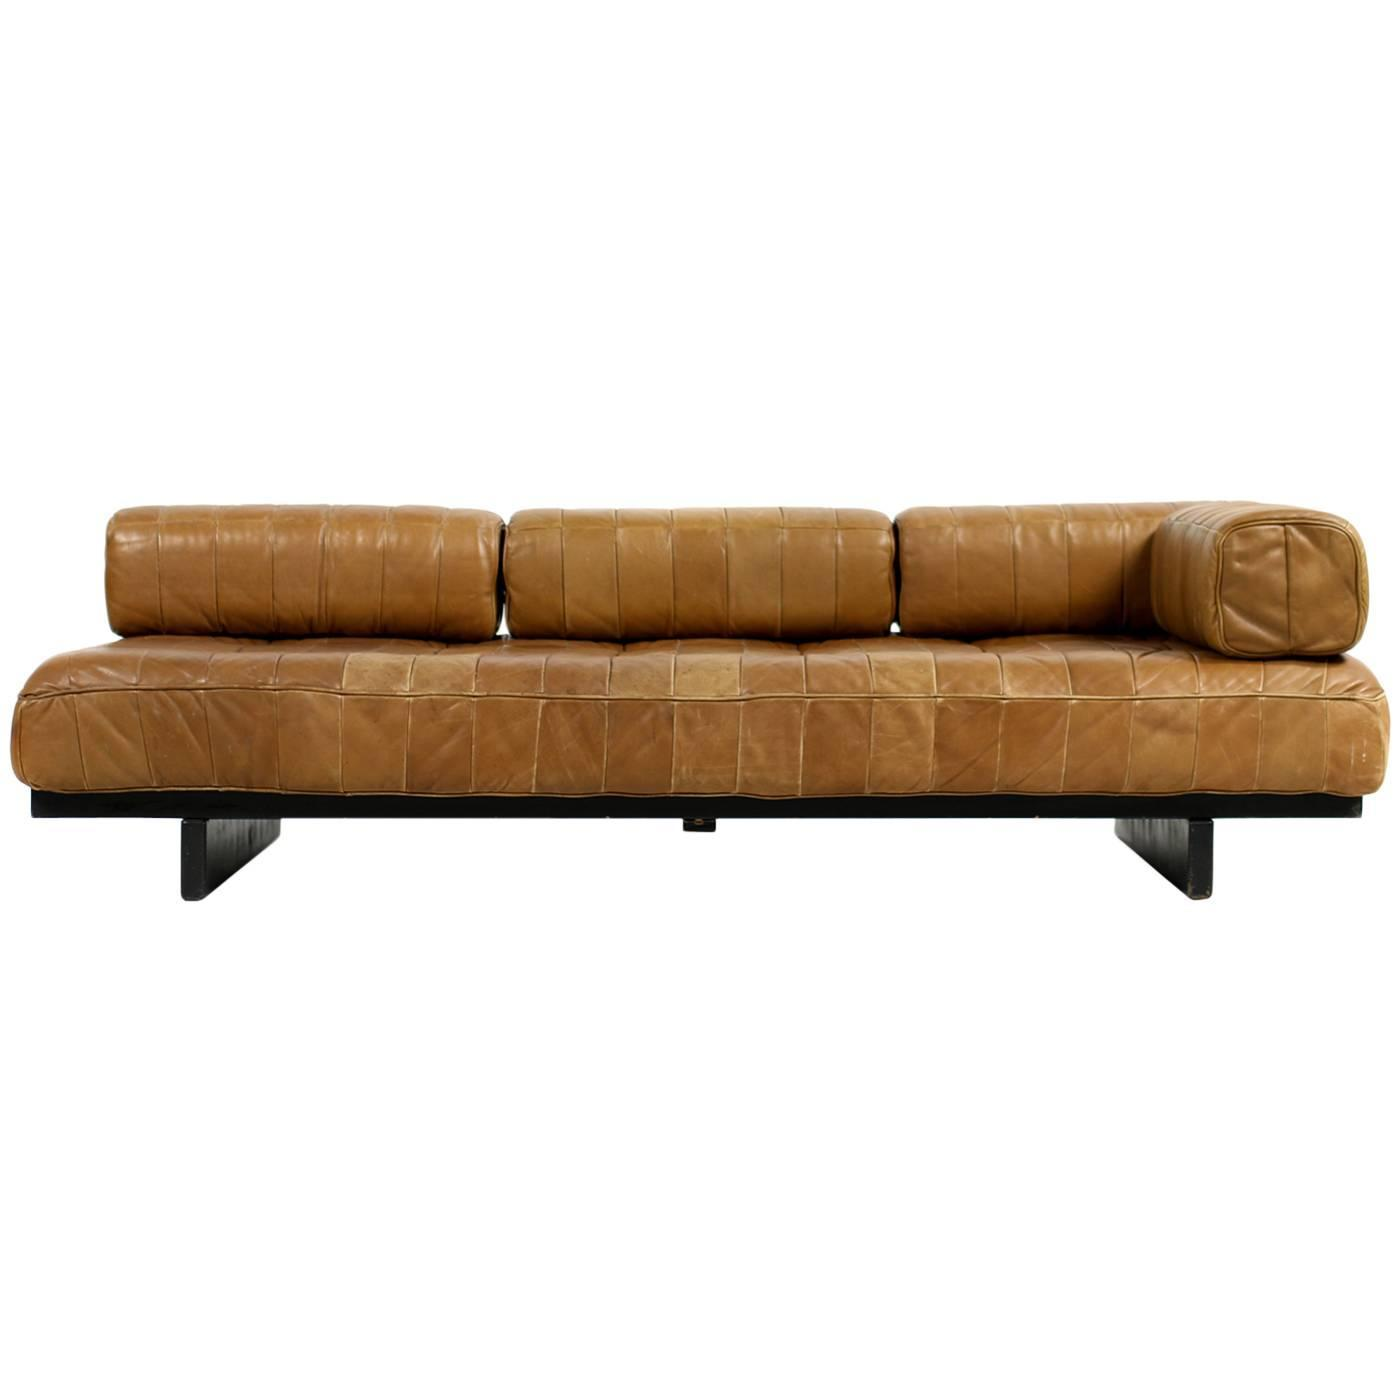 Brighthouse Sofa Images